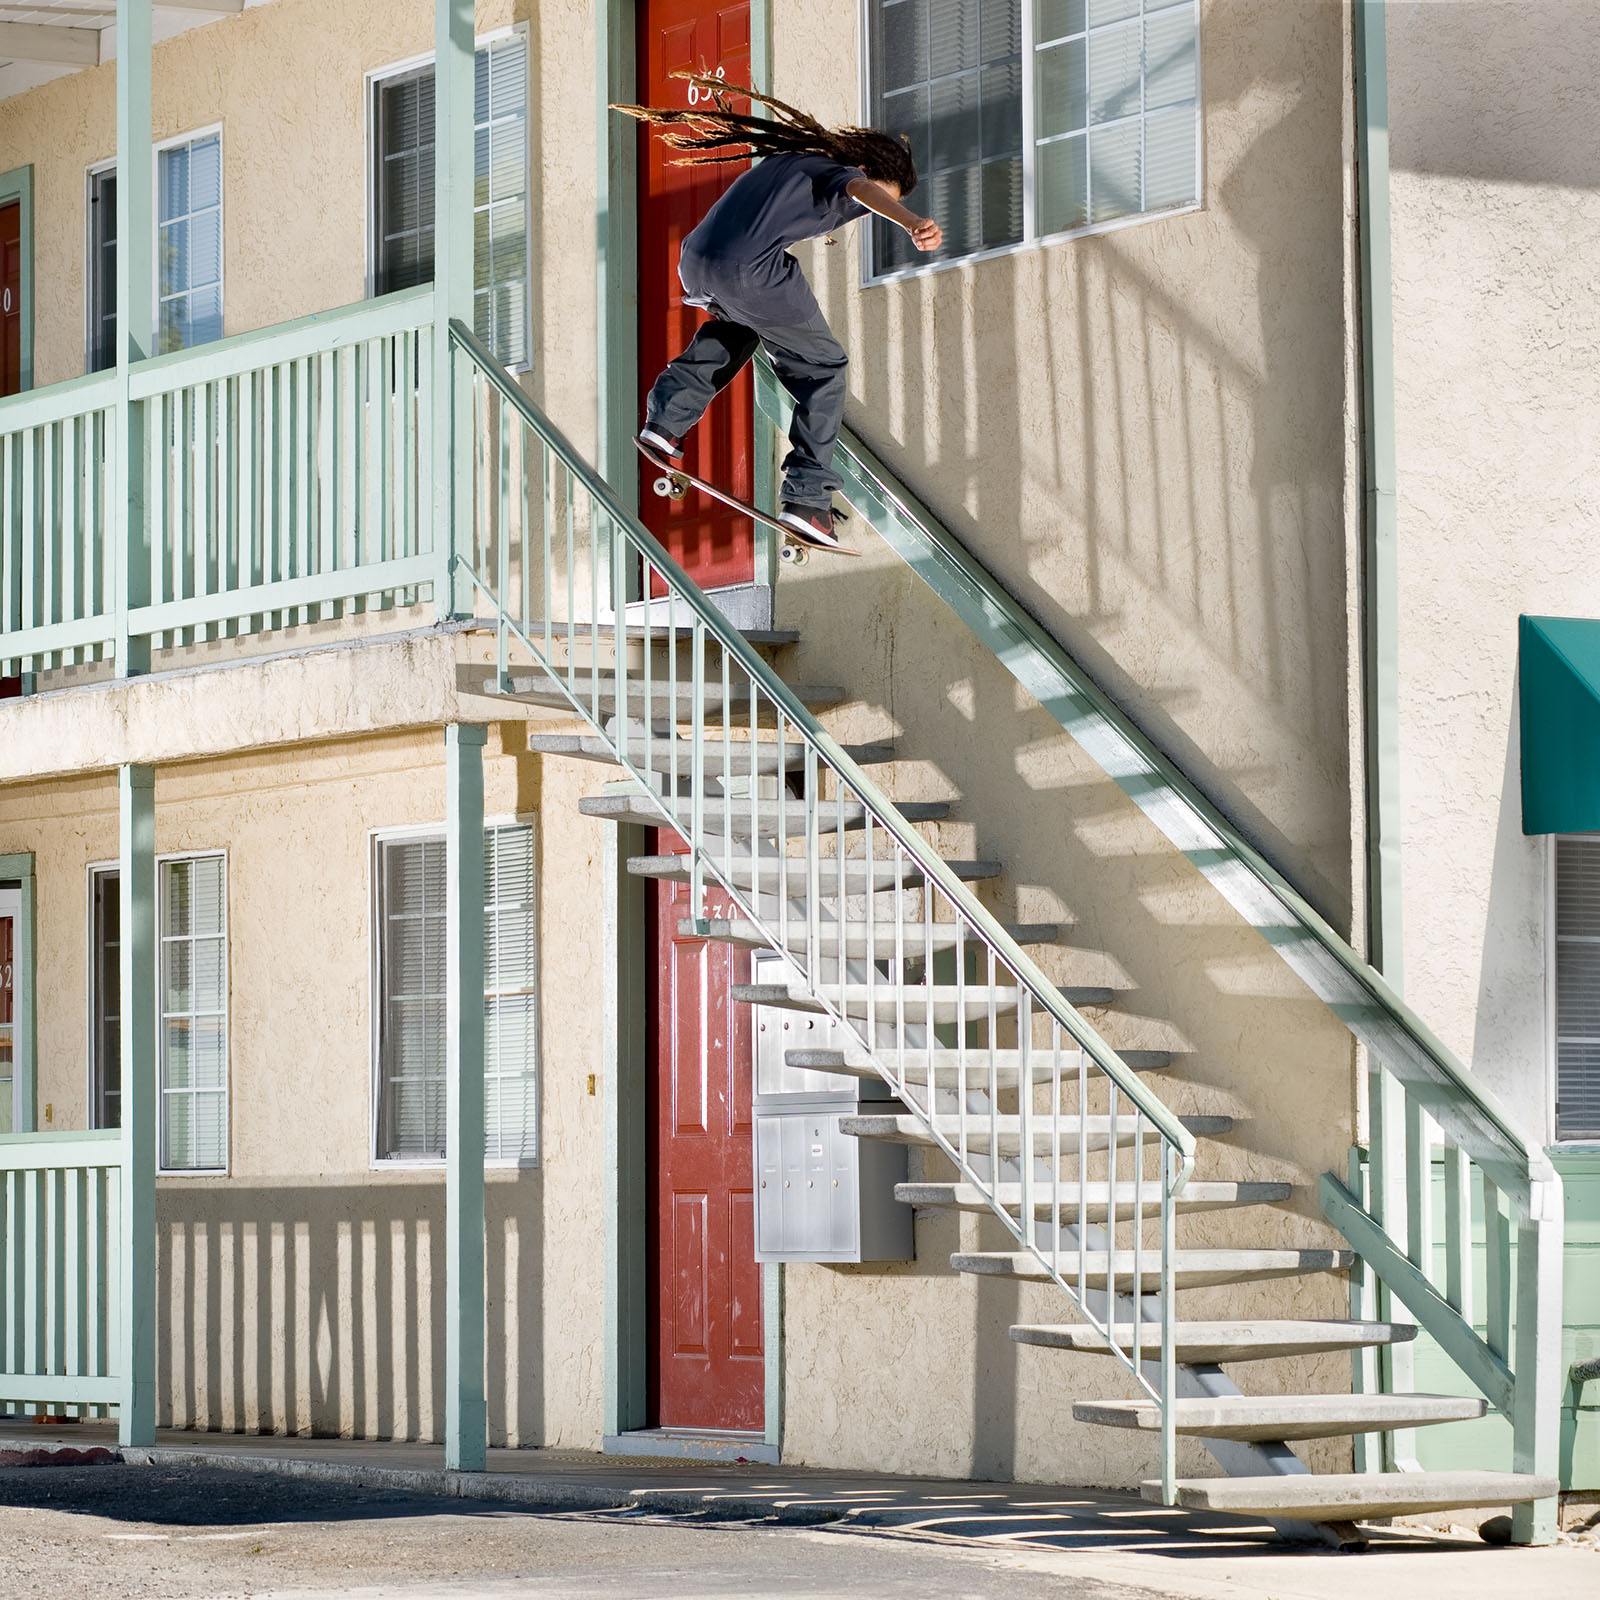 The issue of a lack of skateboarding areas in the us